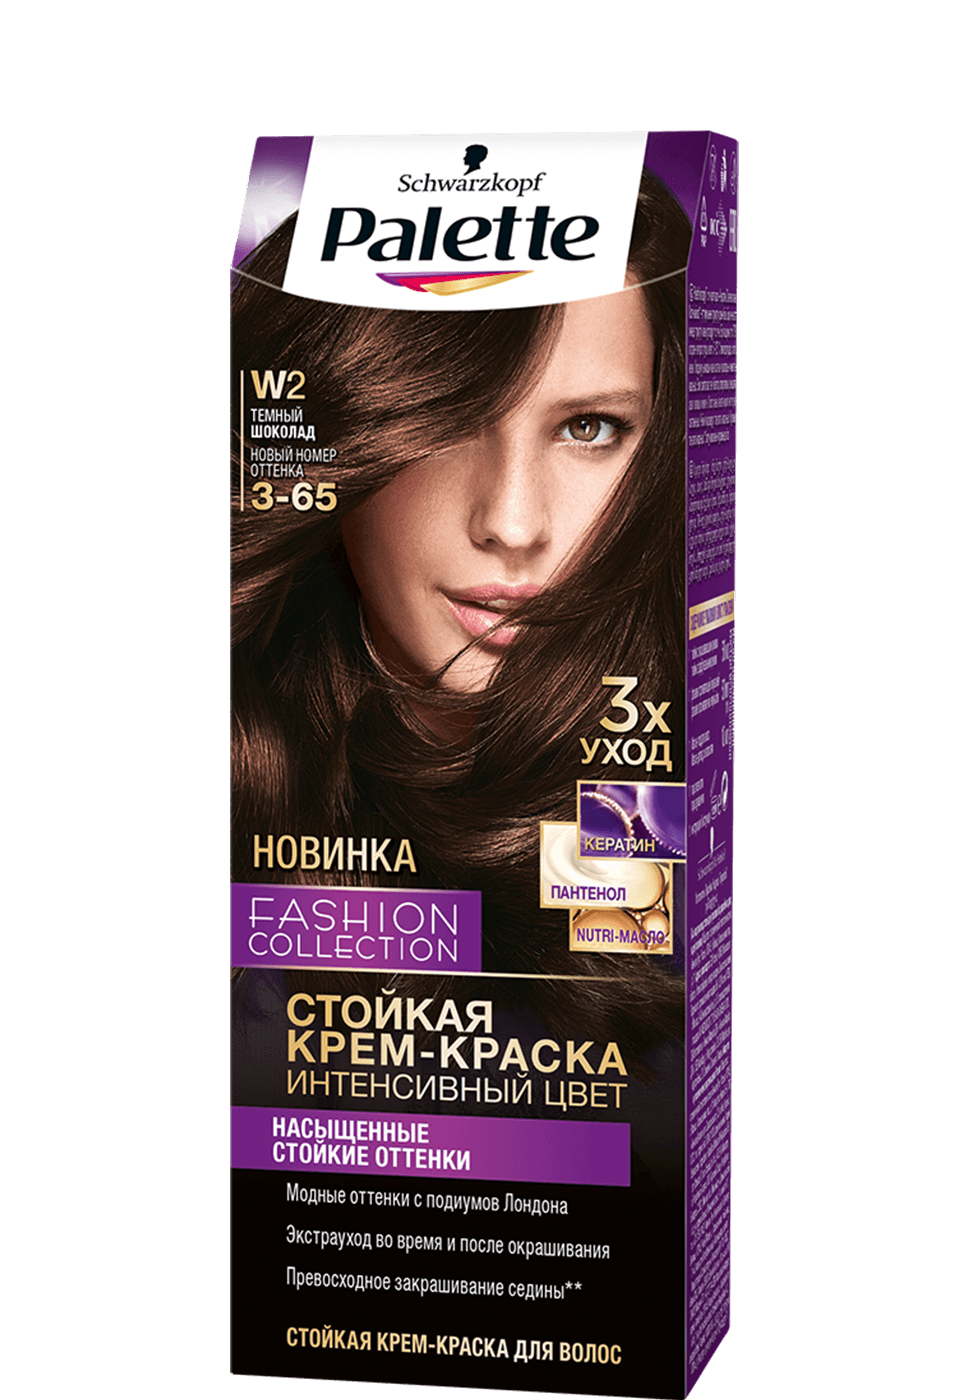 palette_ru_icc_baseline_fashion_collection_W2_3-65